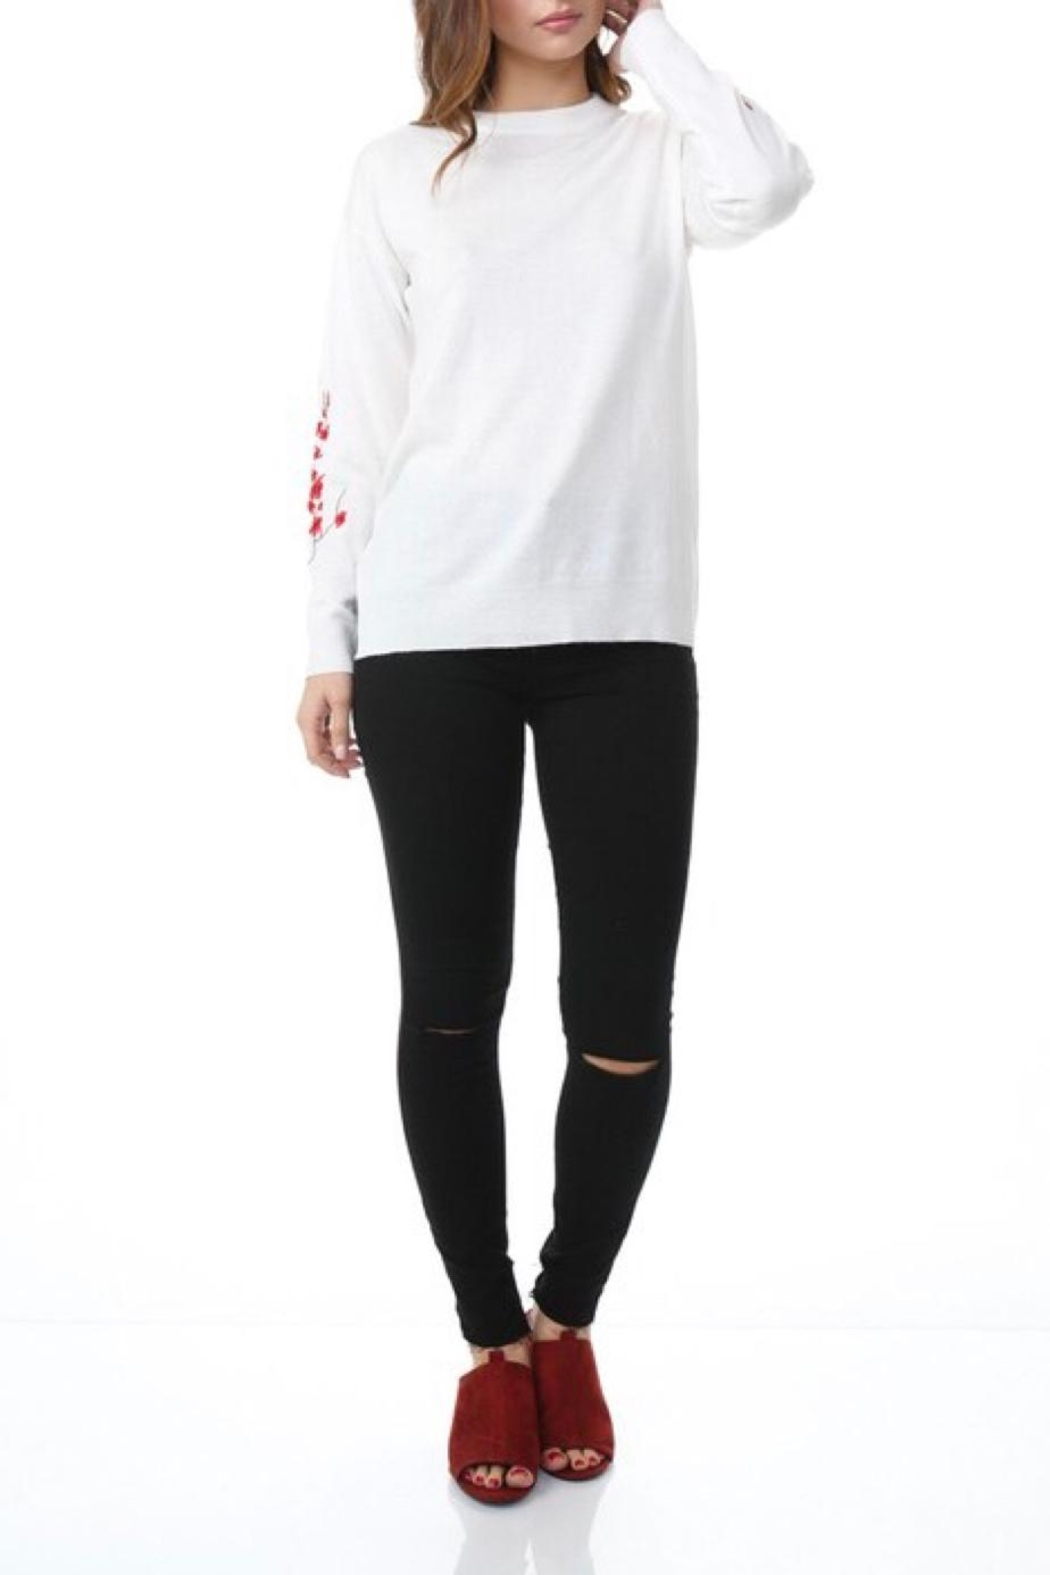 COVERSTITCHED Embroidered Sleeve Sweater - Back Cropped Image